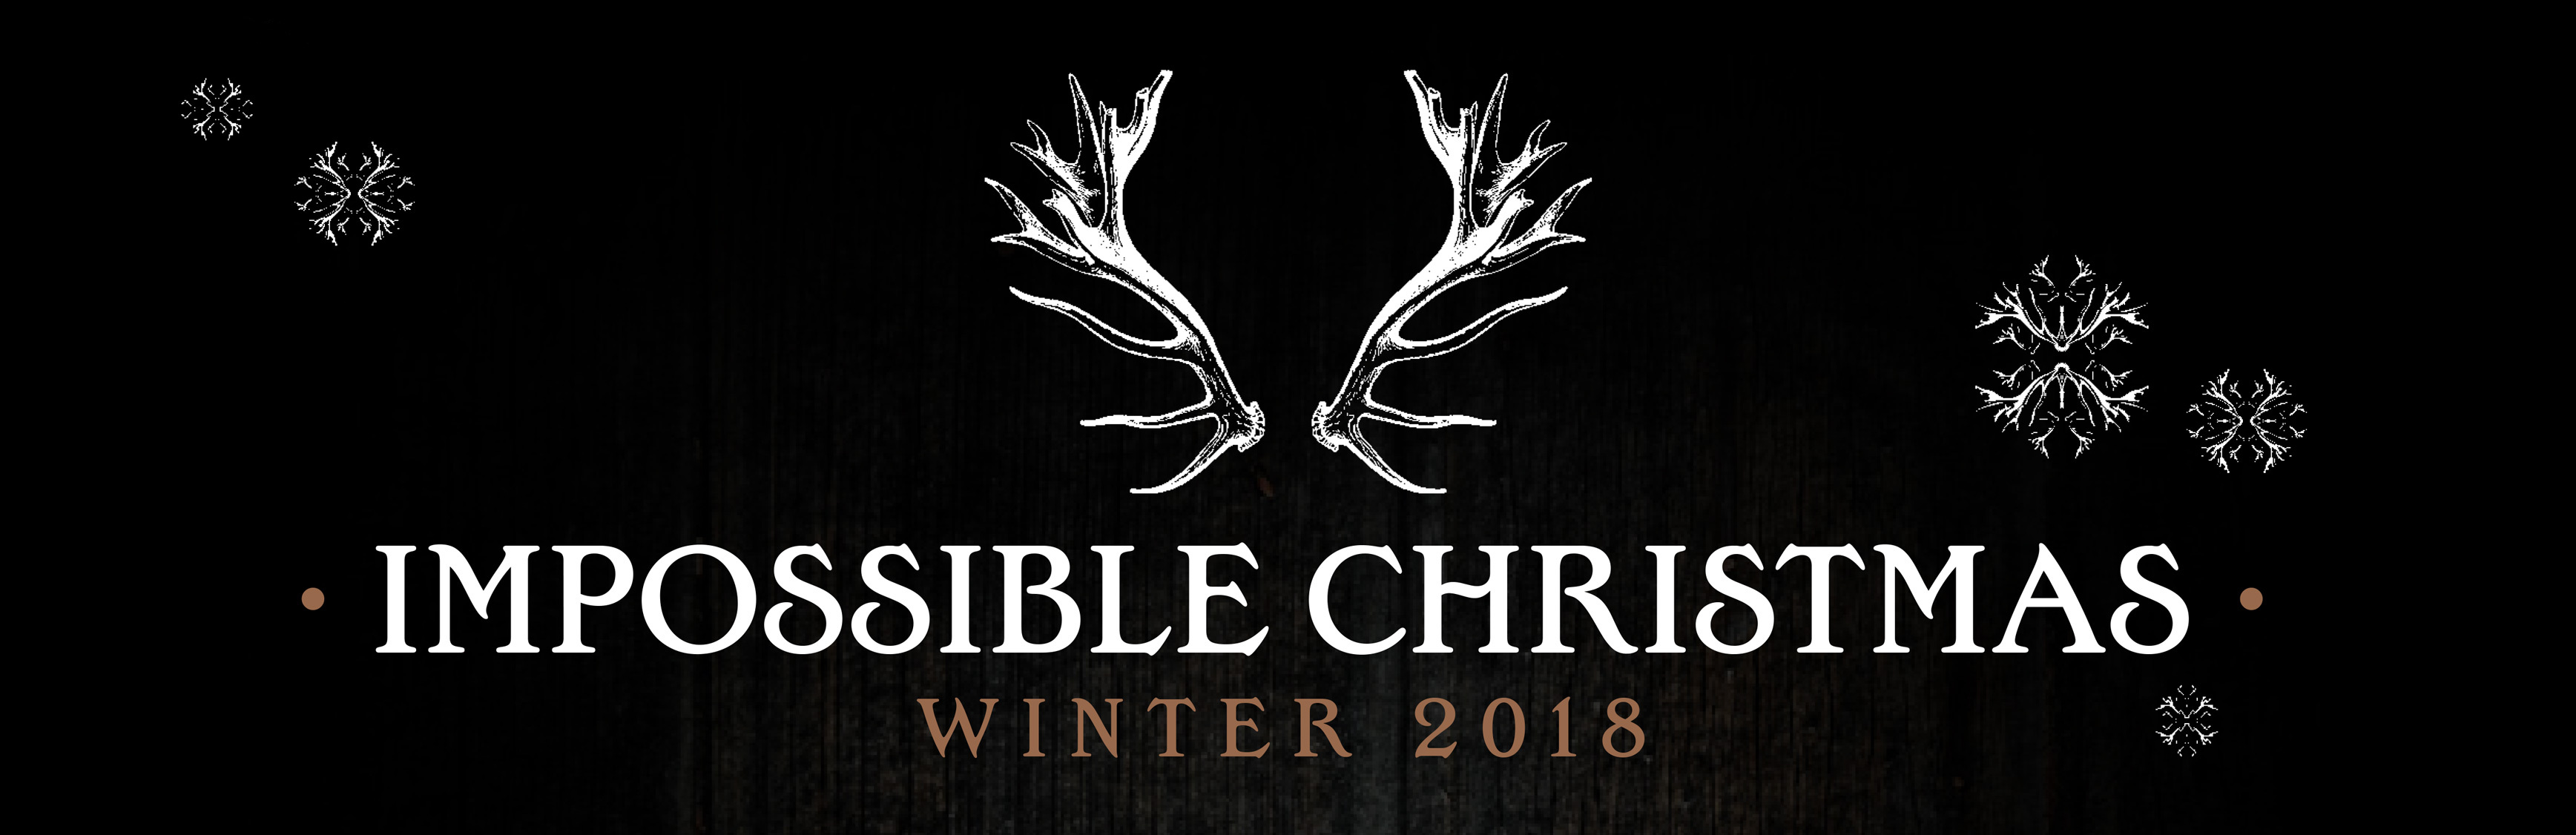 20180712 Impossible Christmas Banner